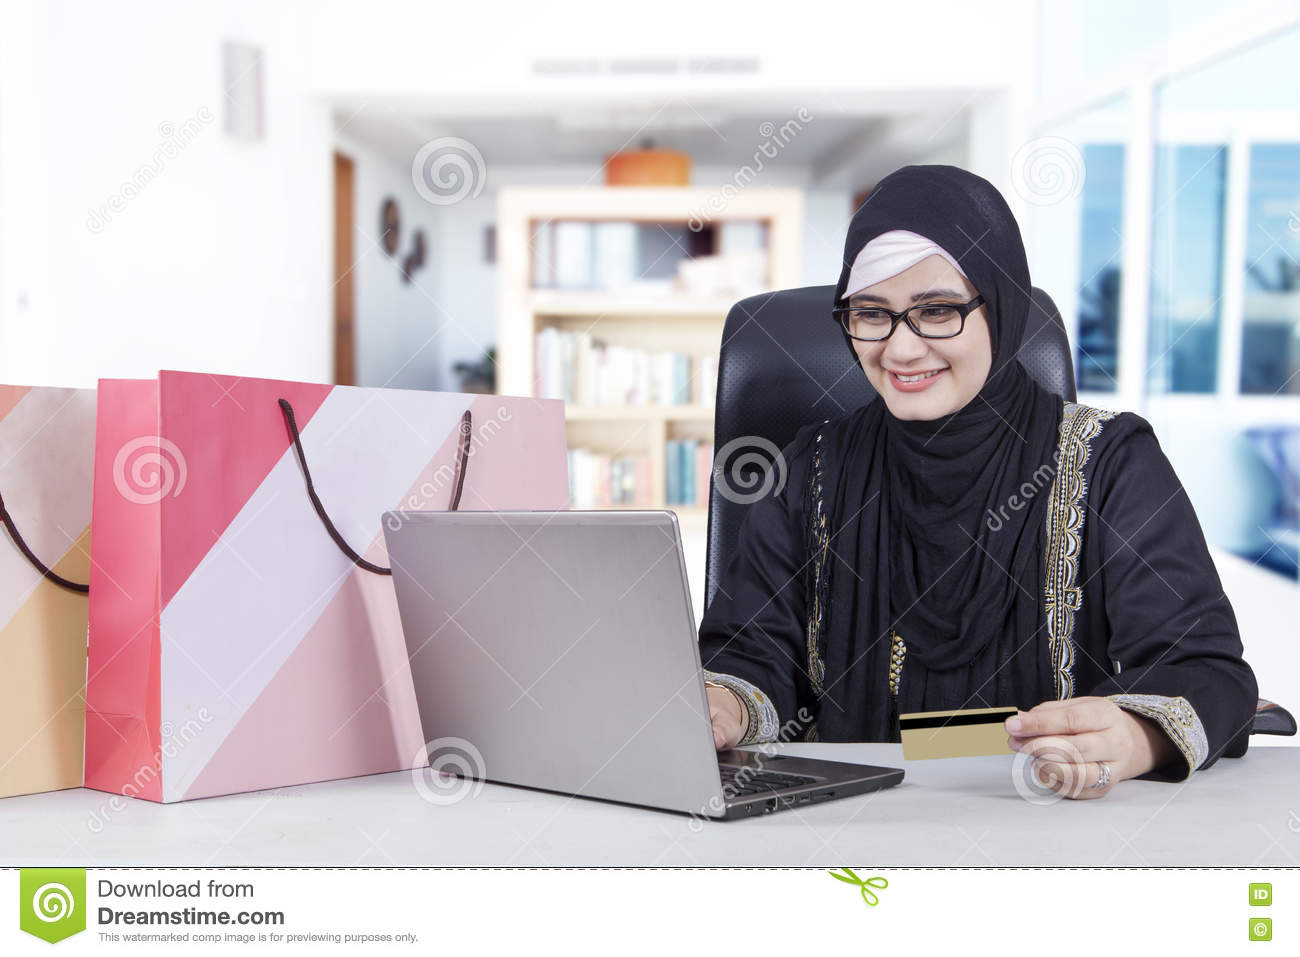 Arabic woman with notebook and credit card